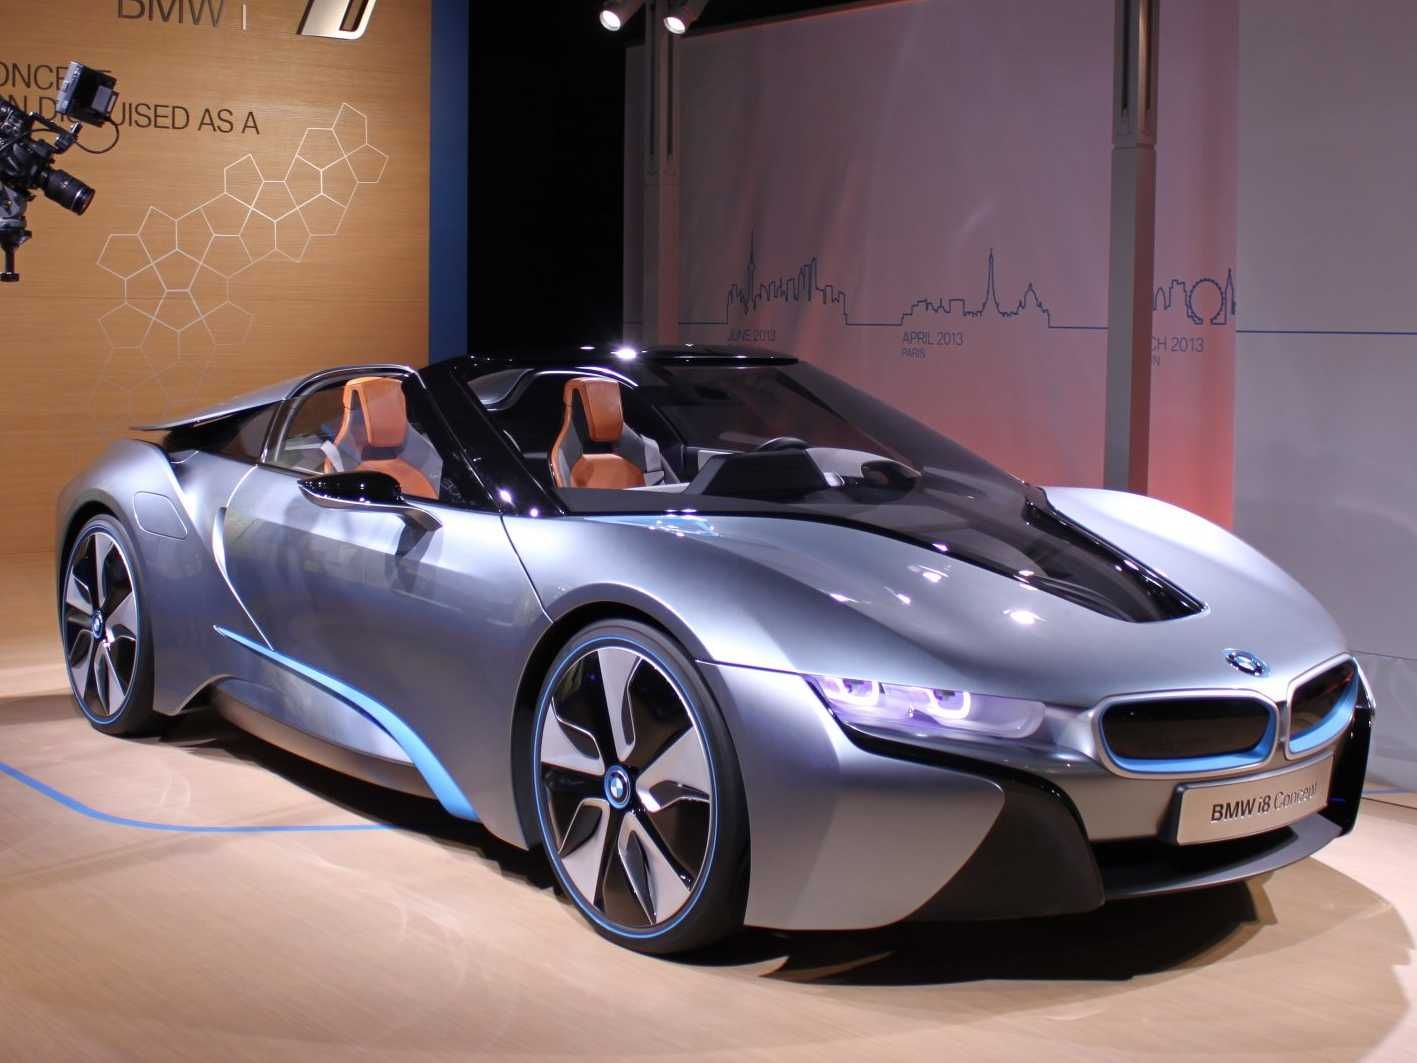 BMW Has Awesome Cars That Will Shape The Future Of Electric - Awesome bmw